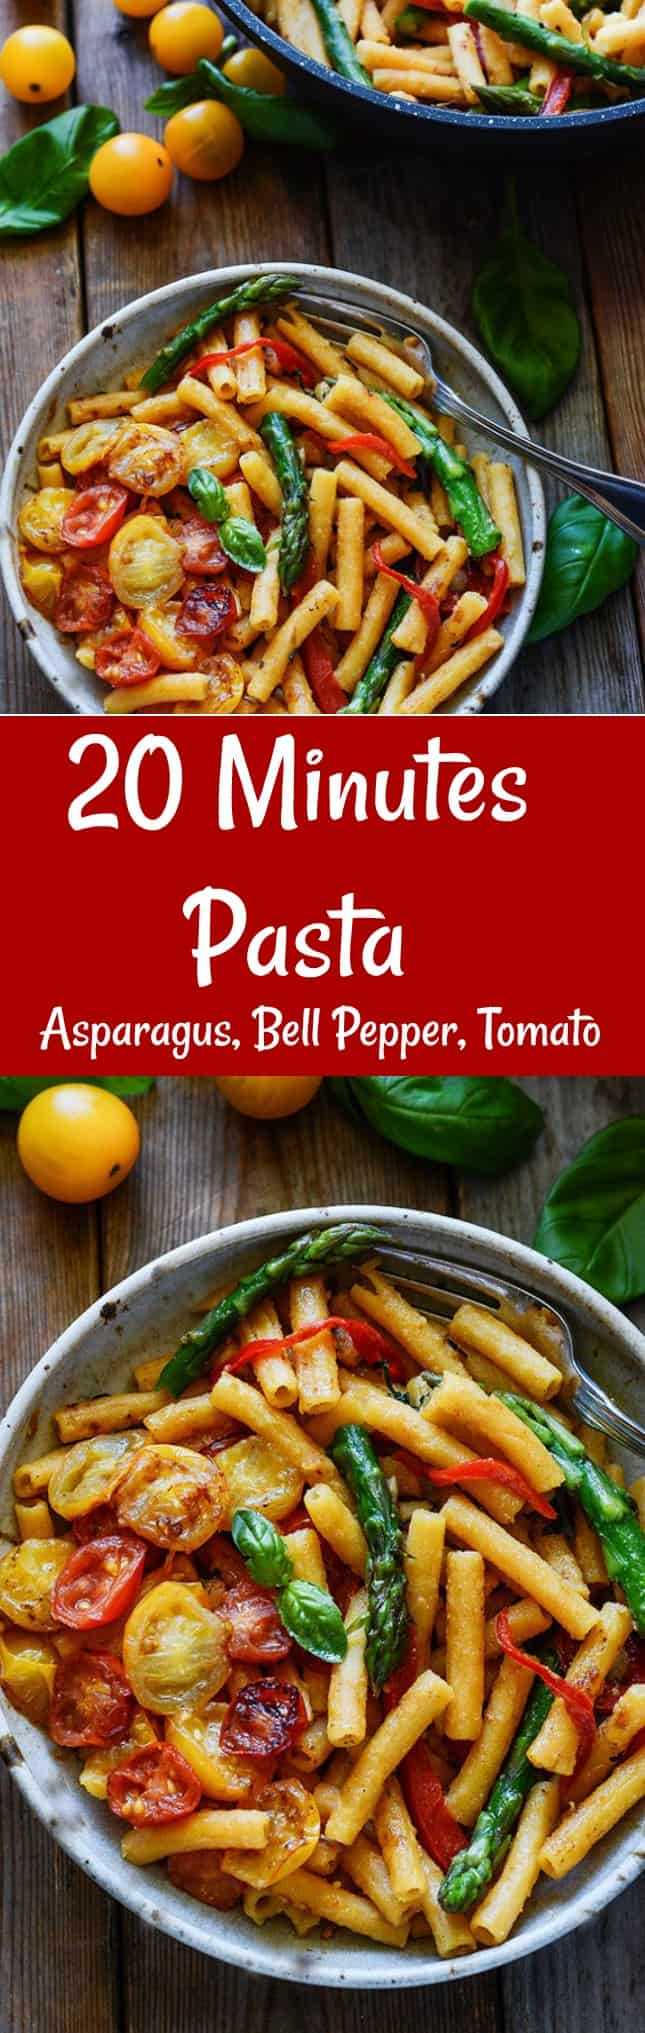 20 Minute Pasta Asparagus, Bell Pepper and Toatoes